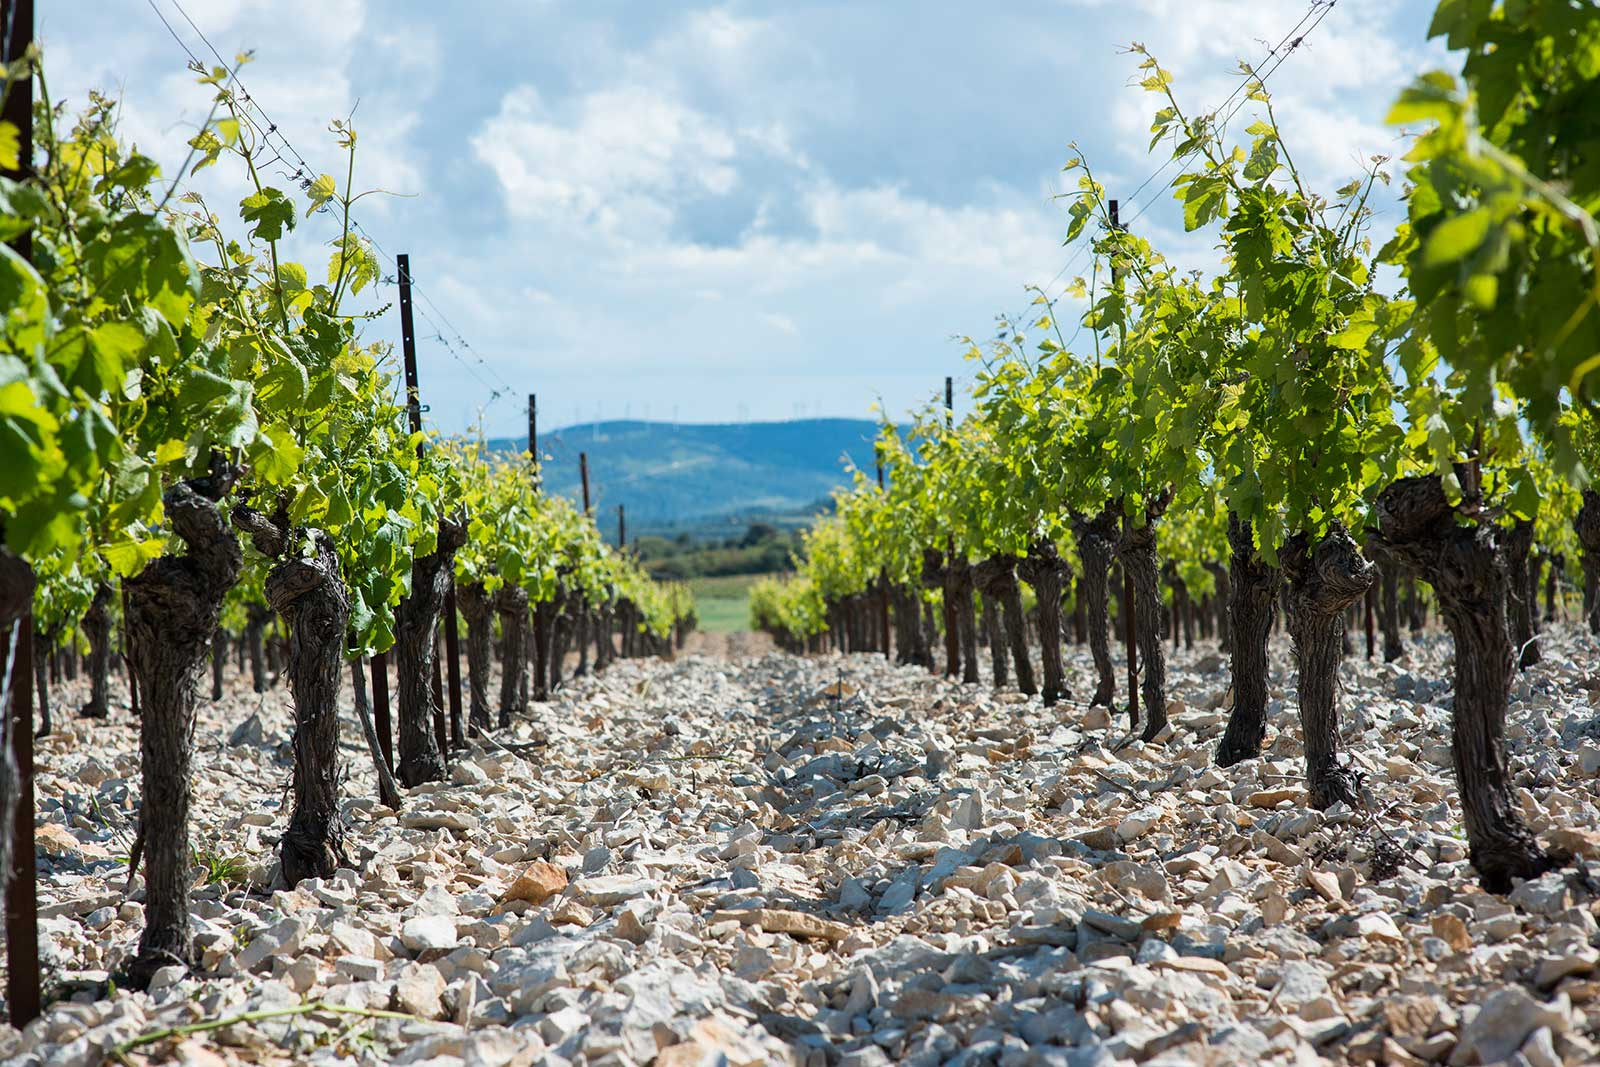 Crushed rocks and tree trunks — the unique setting of Domaine Anne Gros & Jean-Paul Tollot's old-vine vineyards. ©Domaine Anne Gros & Jean-Paul Tollot